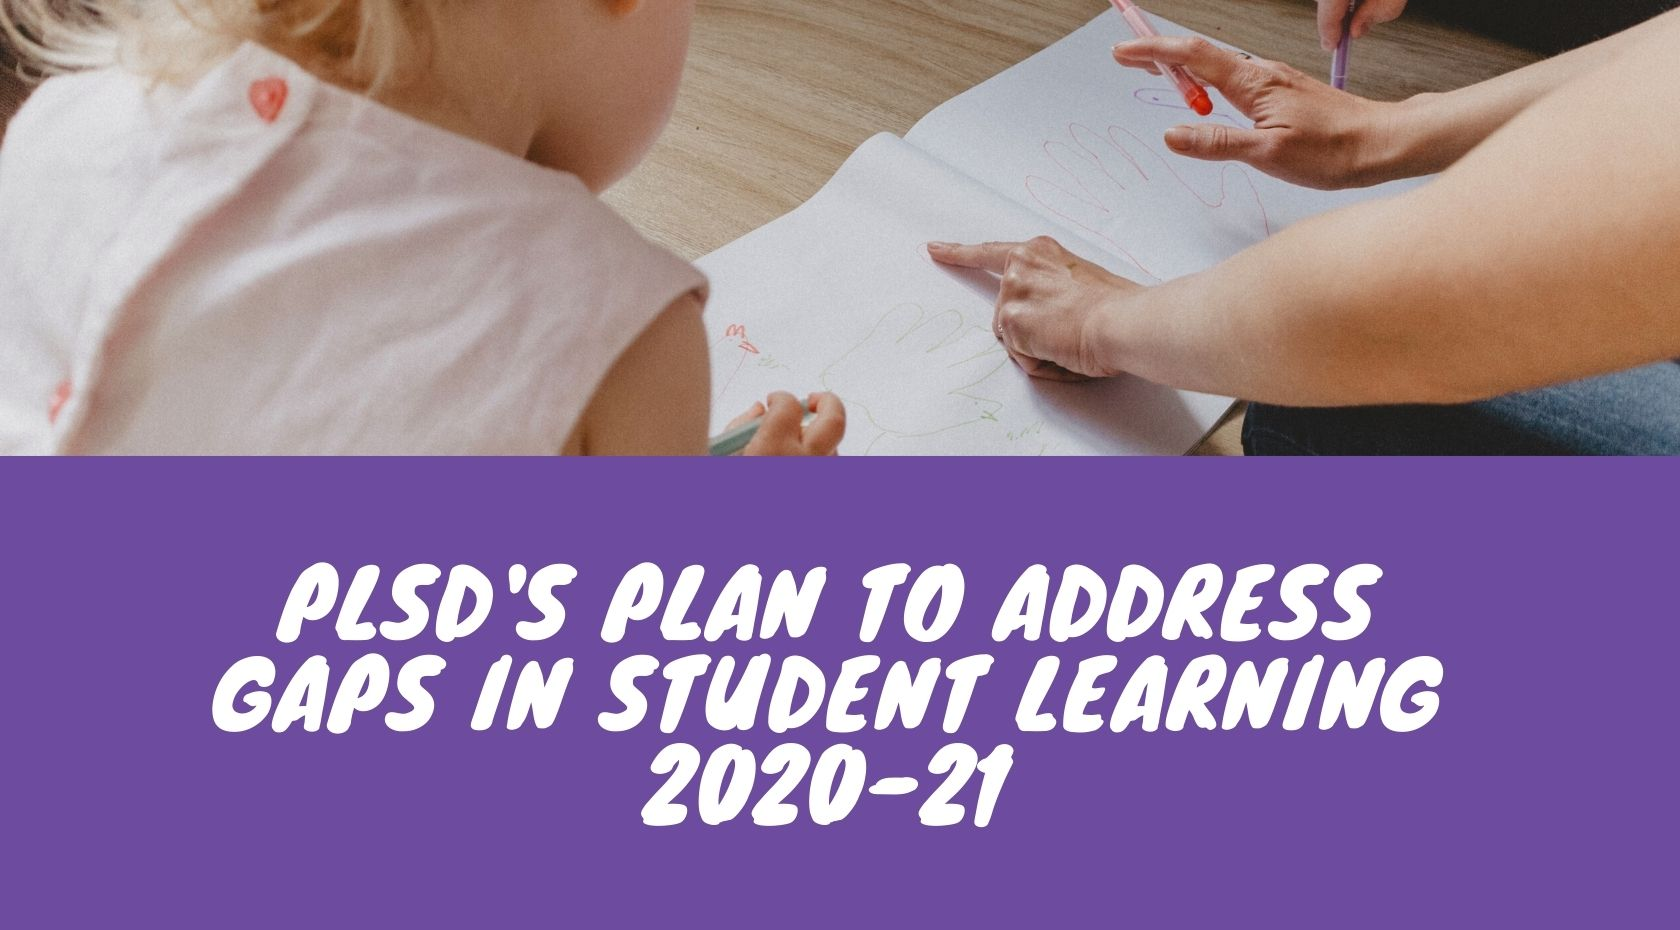 Plan to Address Student Learning Gaps image